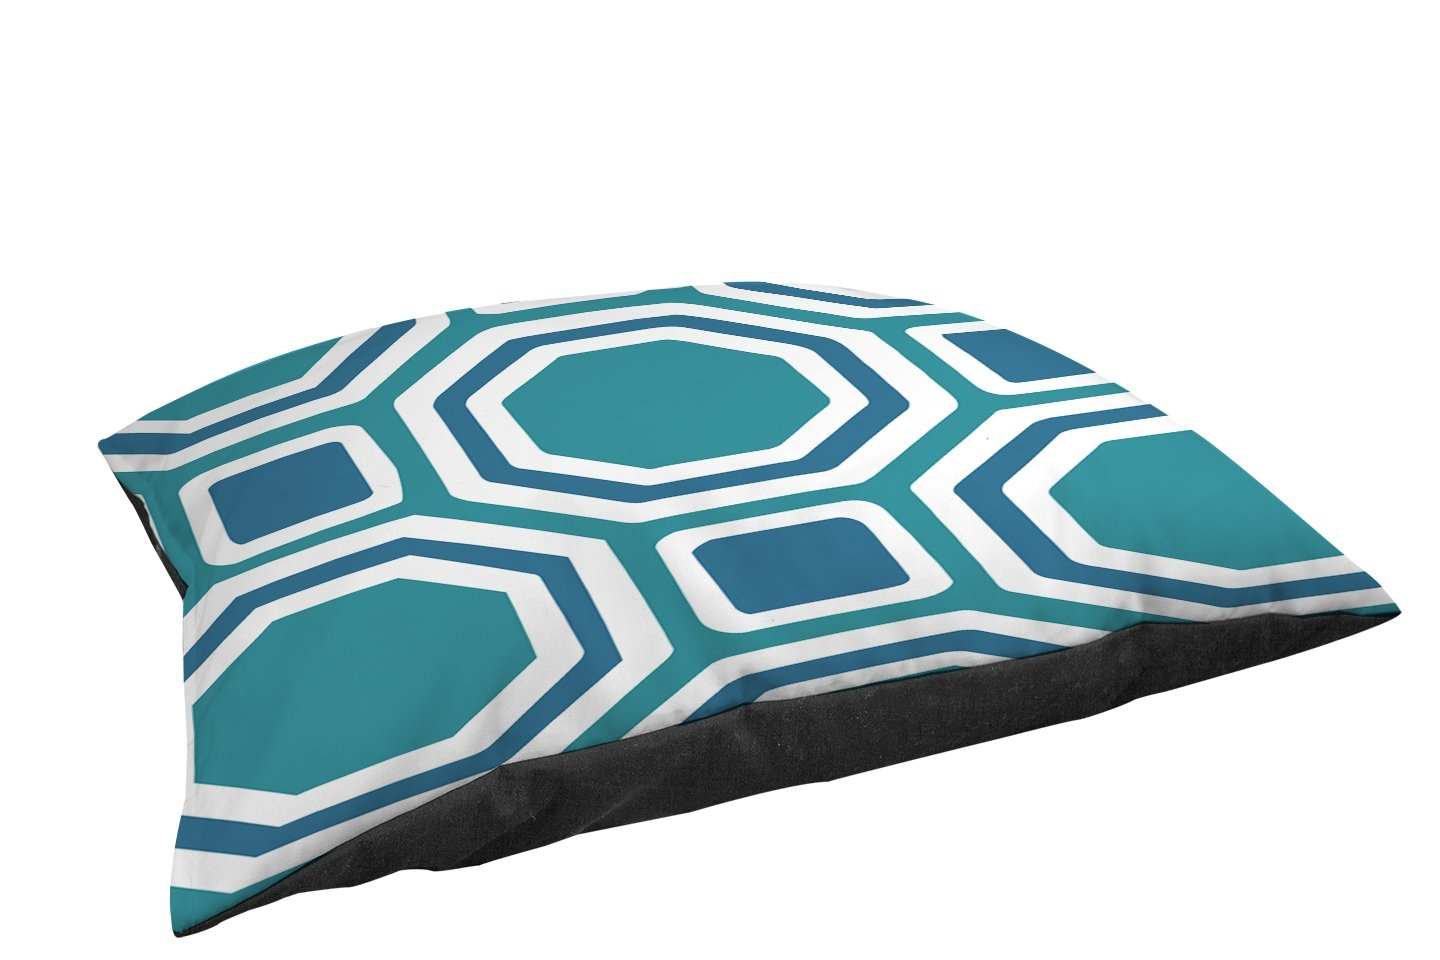 Manual Woodworkers & Weavers Fleece Top Toy or Small Breed Pet Bed, Honeycomb Connection, Blue